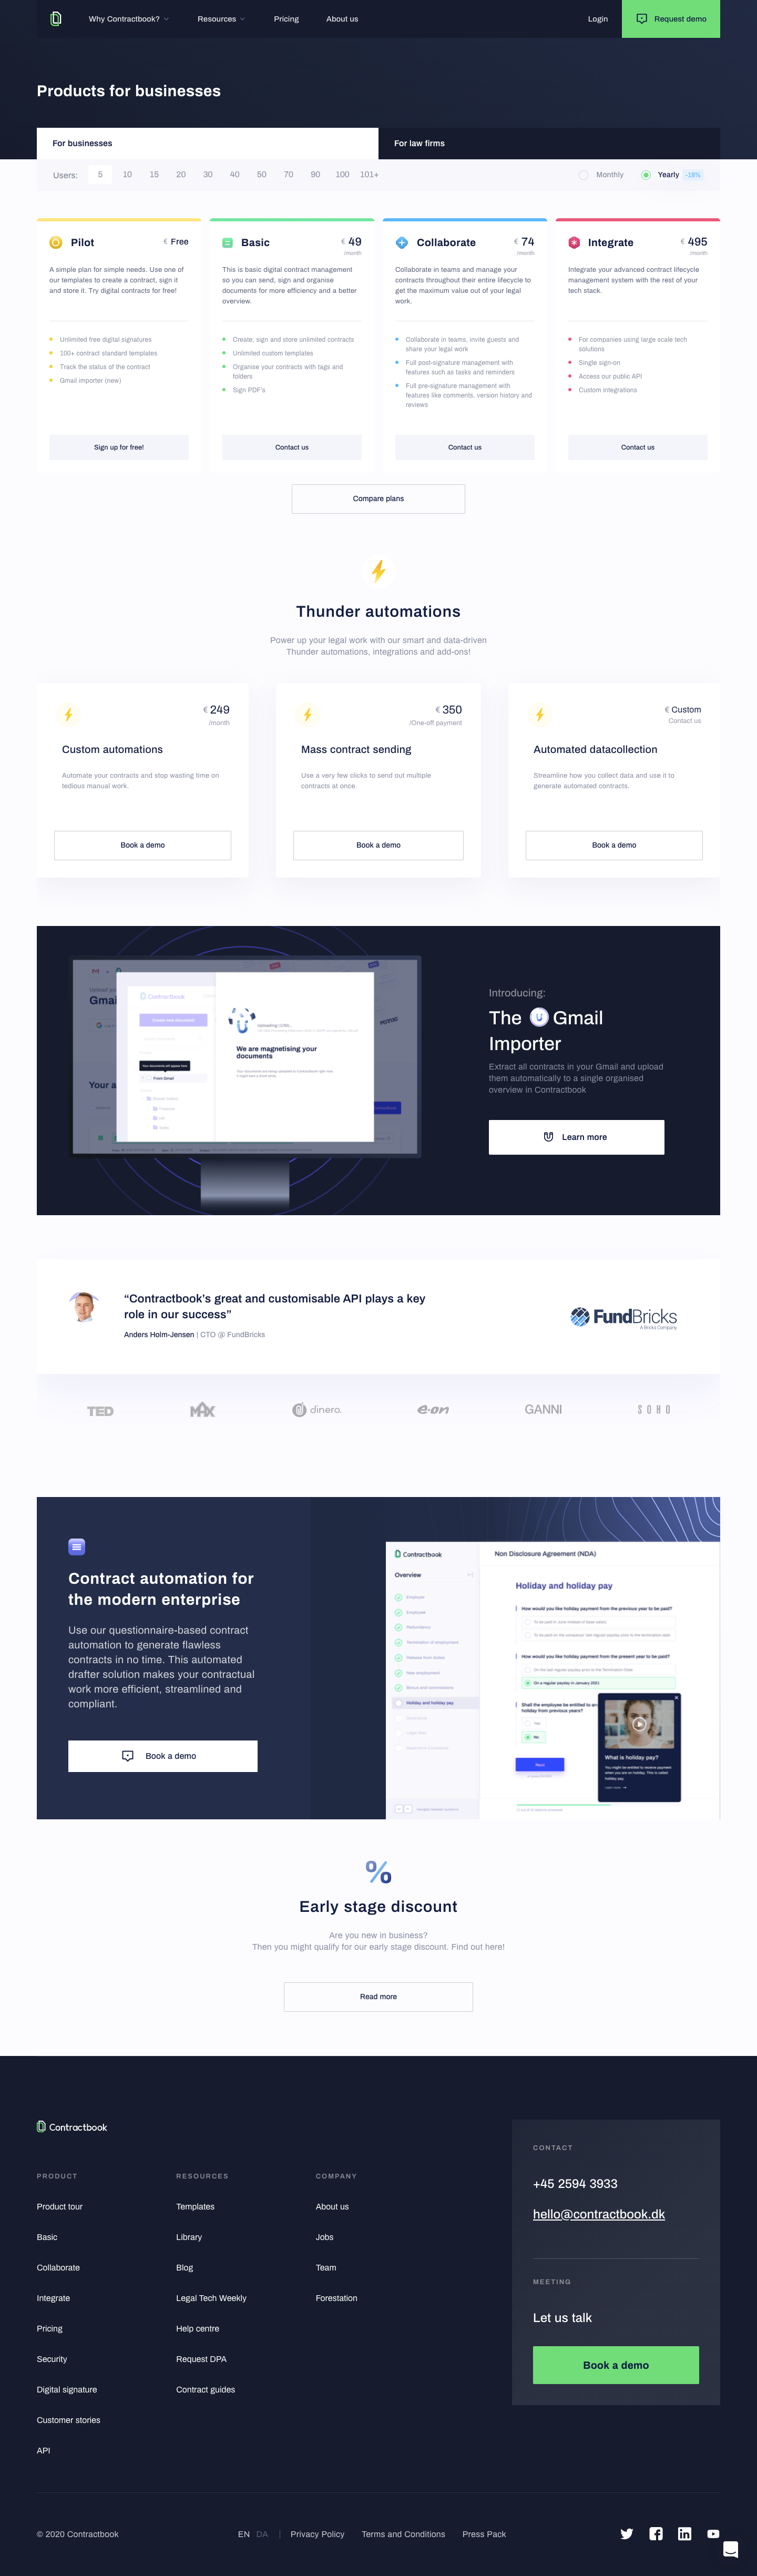 Contractbook Pricing Page